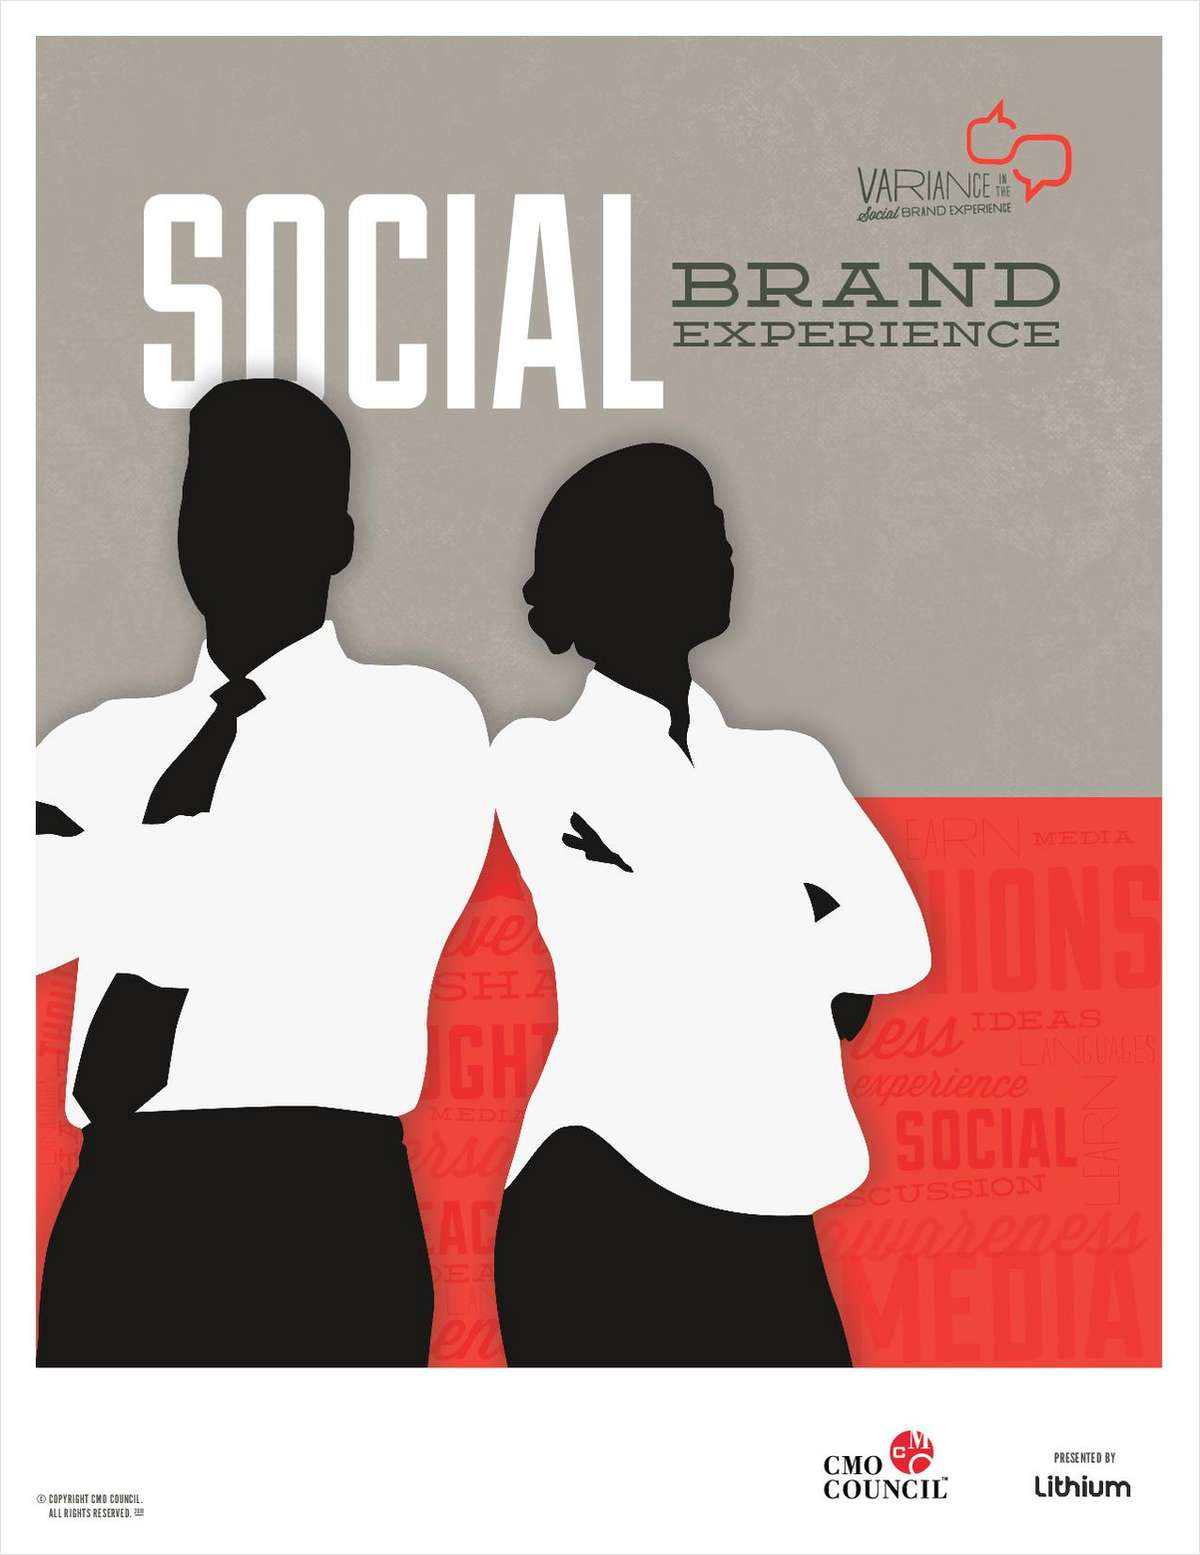 Variance in the Social Brand Experience